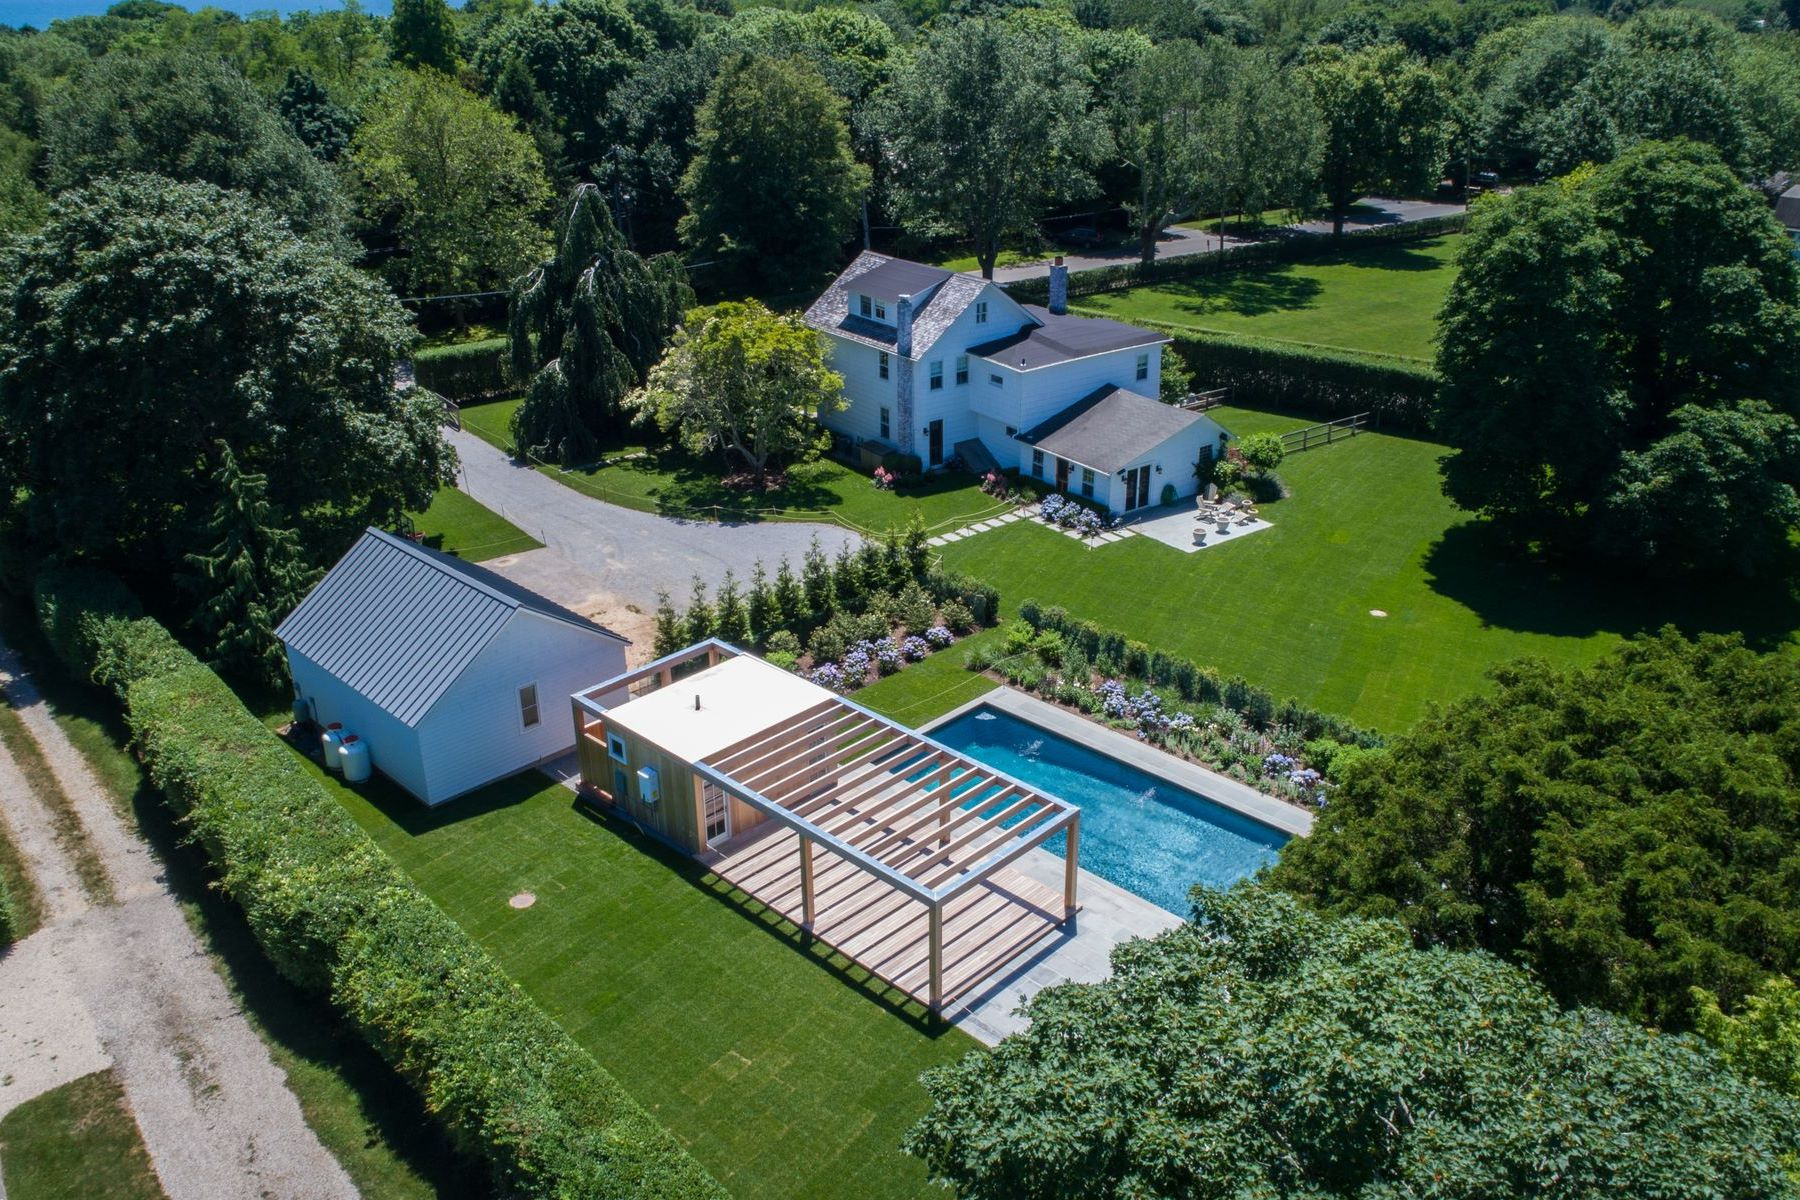 Single Family Homes for Sale at LANES FARMHOUSE ON 1.0+ ACRES 66 Old Montauk Highway Amagansett, New York 11930 United States